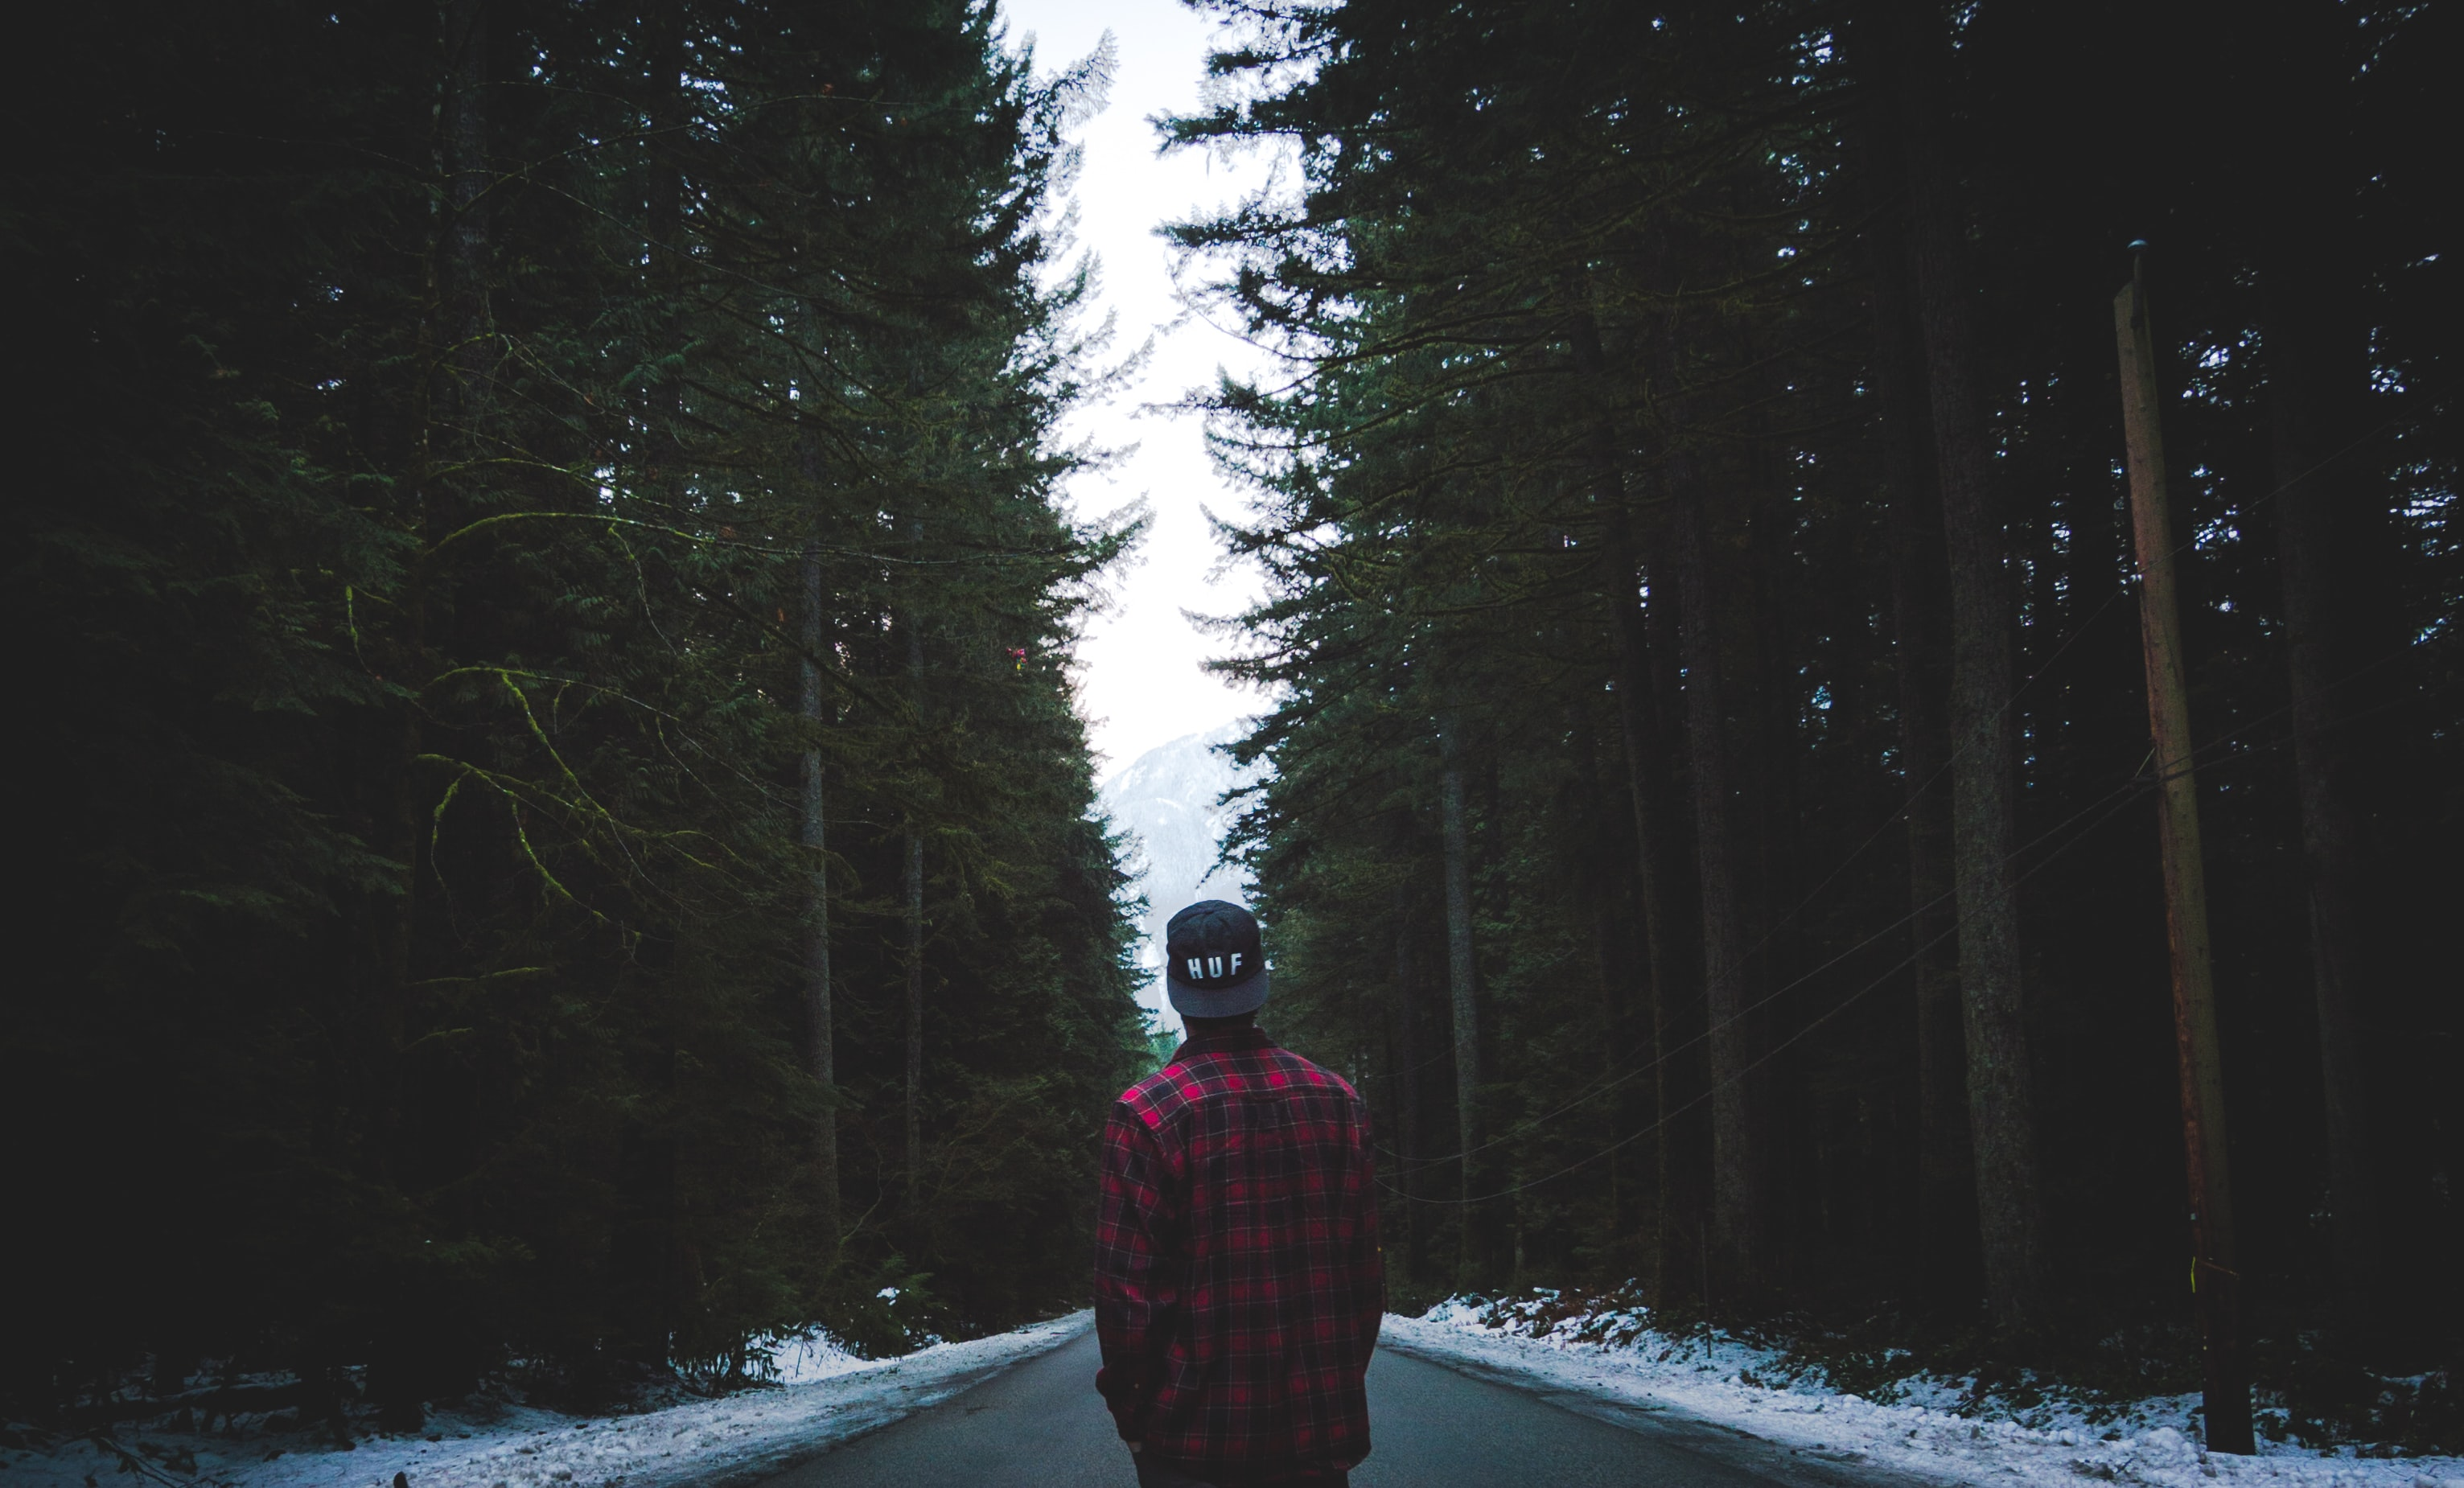 person in plaid sport shirt standing on asphalt road between trees